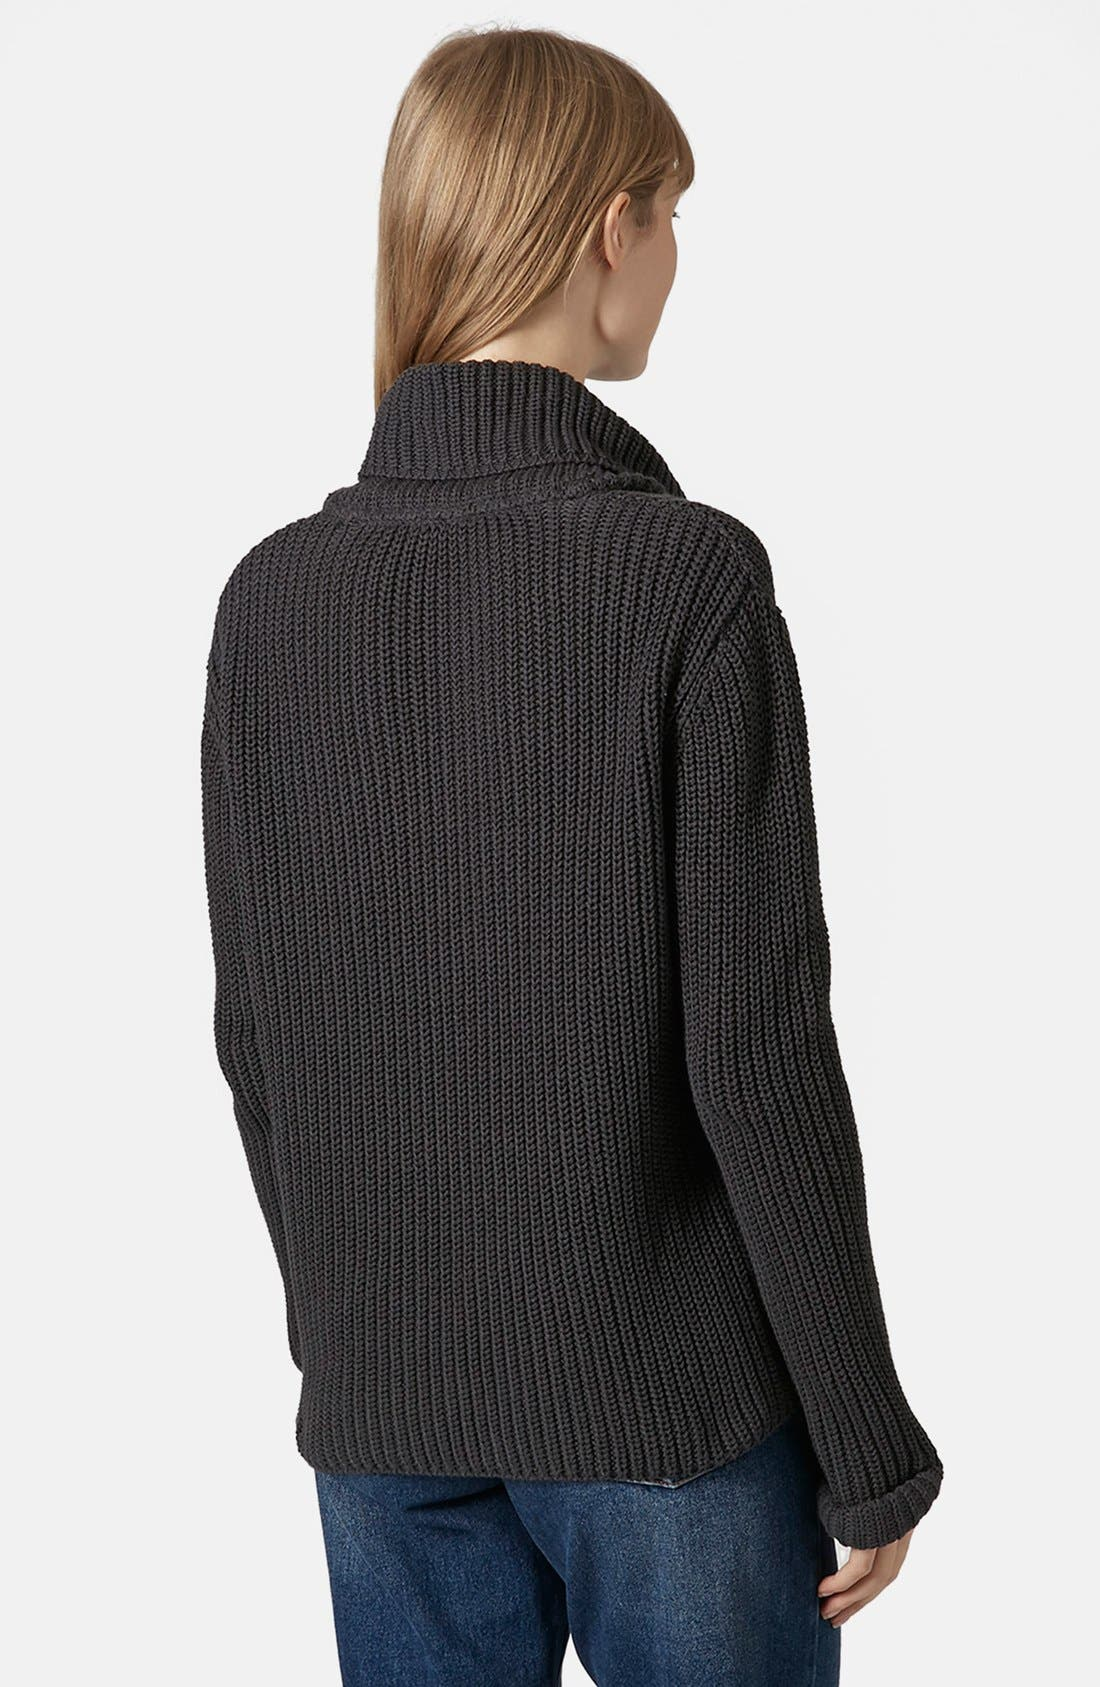 TOPSHOP BOUTIQUE,                             Roll Neck Fisherman Sweater,                             Alternate thumbnail 3, color,                             021